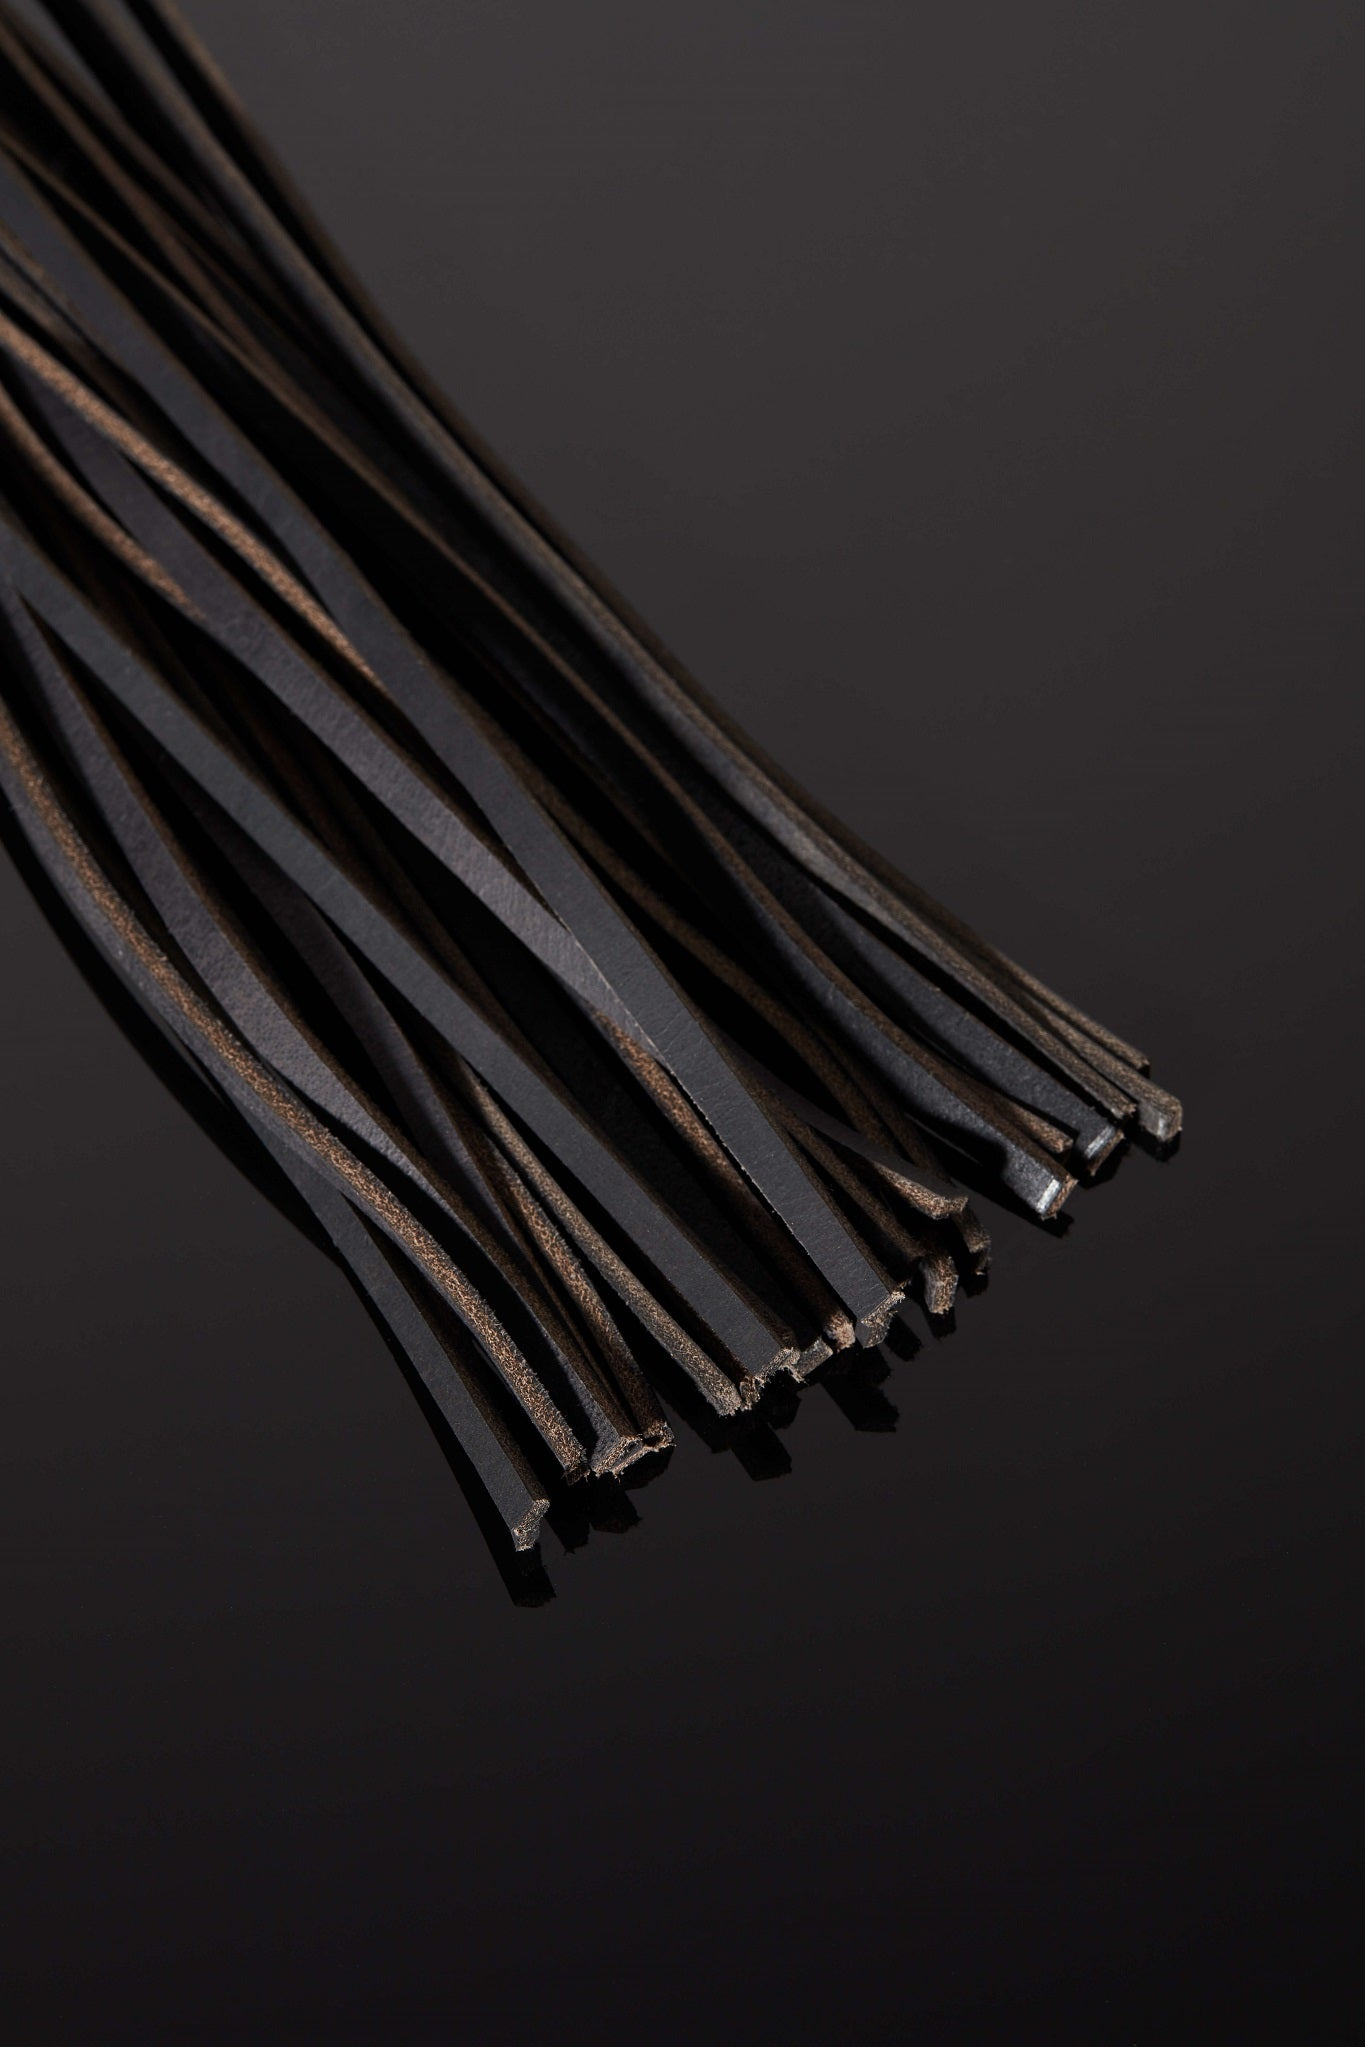 House of SXN Luxury Leather Bondage BDSM SYN Leather Flogger Close 2